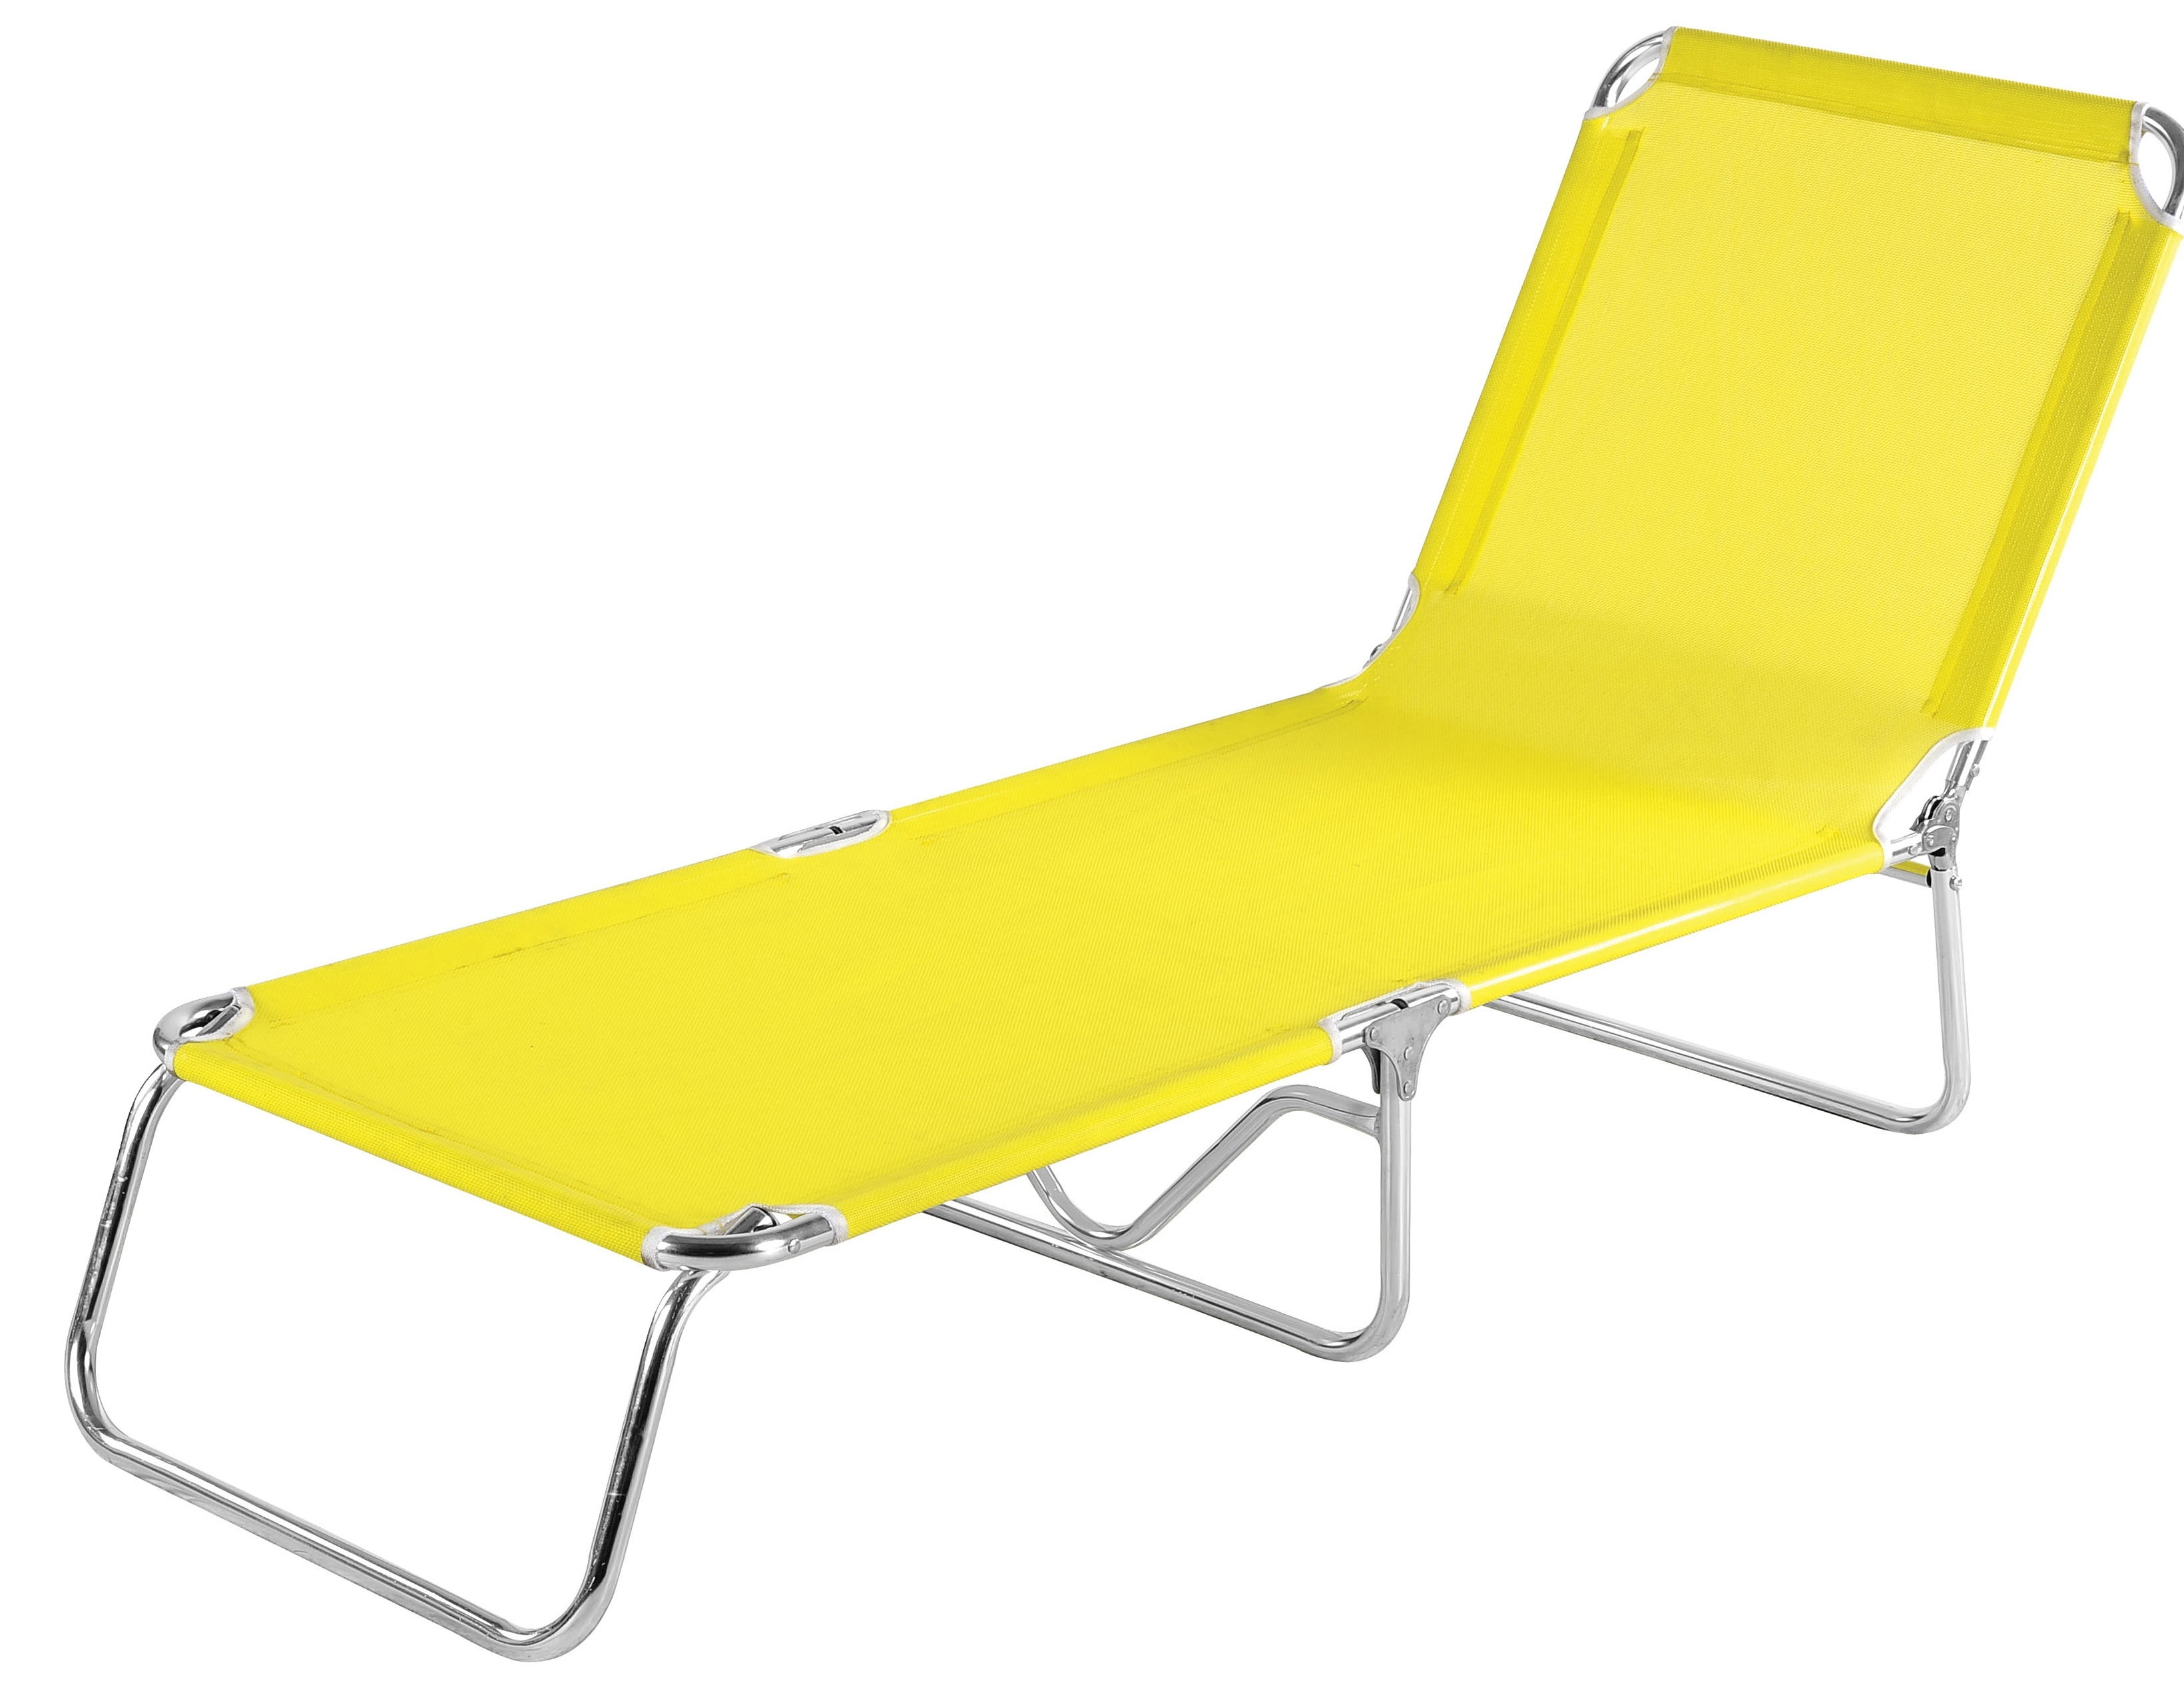 Folding Jelly Chaise Lounge Chair • Lounge Chairs Ideas With Regard To Well Liked Jelly Chaise Lounge Chairs (View 12 of 15)